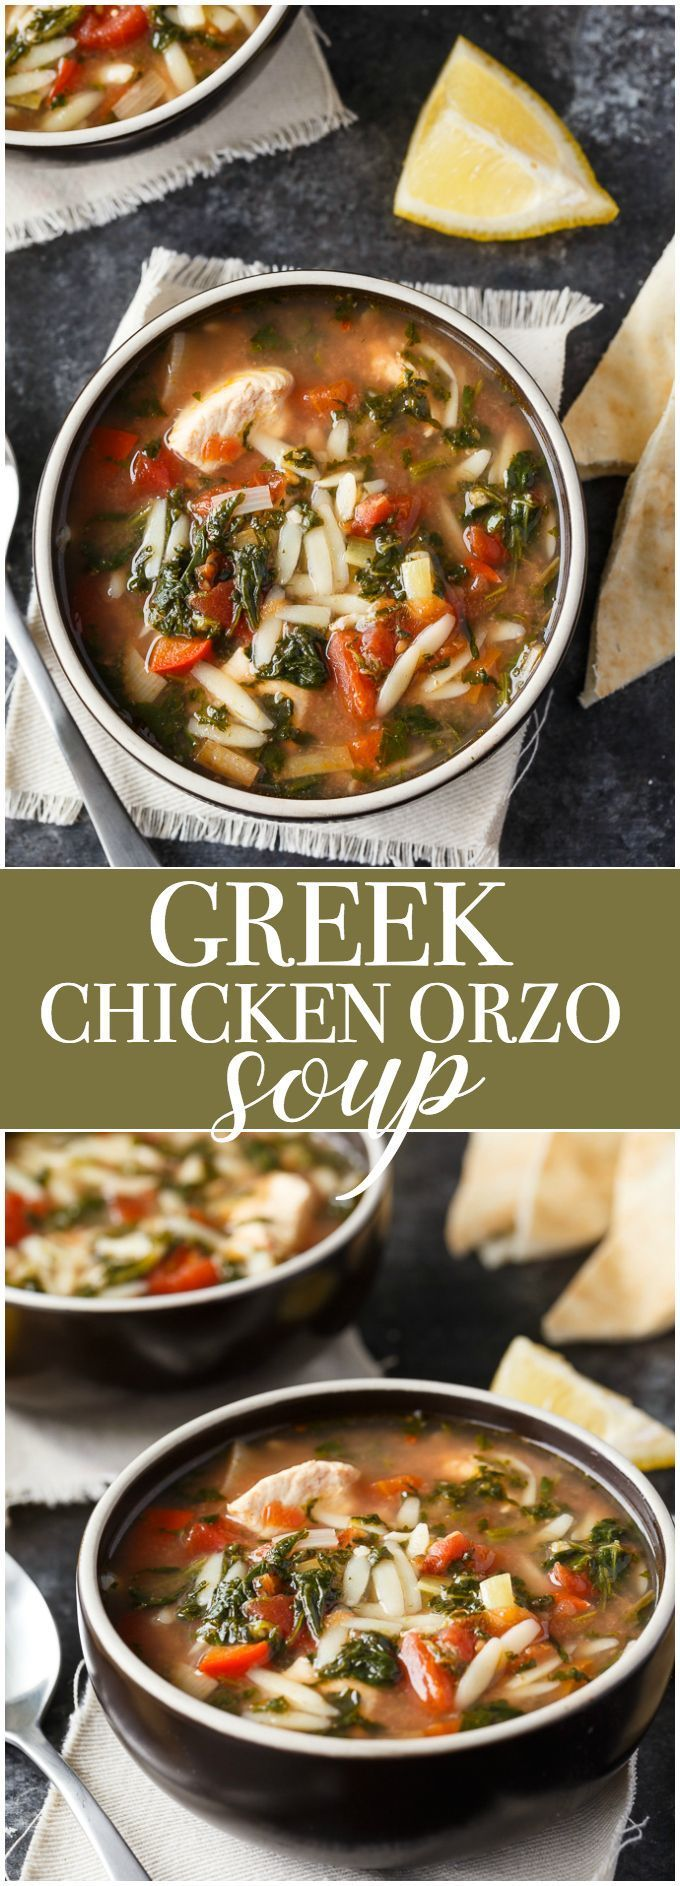 Greek Chicken Orzo Soup - Comfort food made in the slow cooker. This delicious soup has a Greek twist and is packed full of flavour. #ad